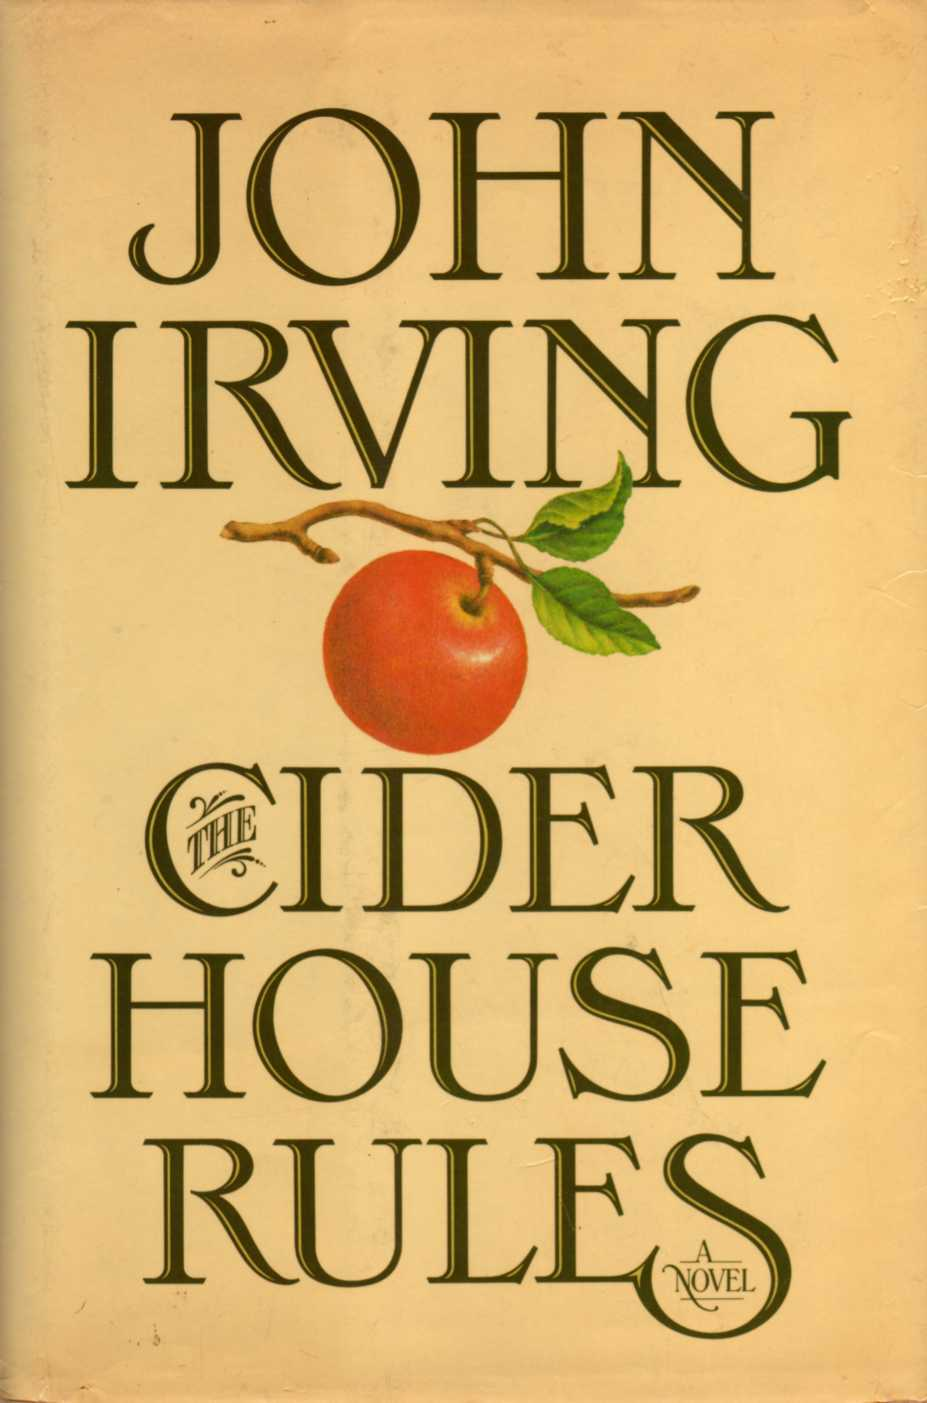 a report on cider house rules a movie by john irving